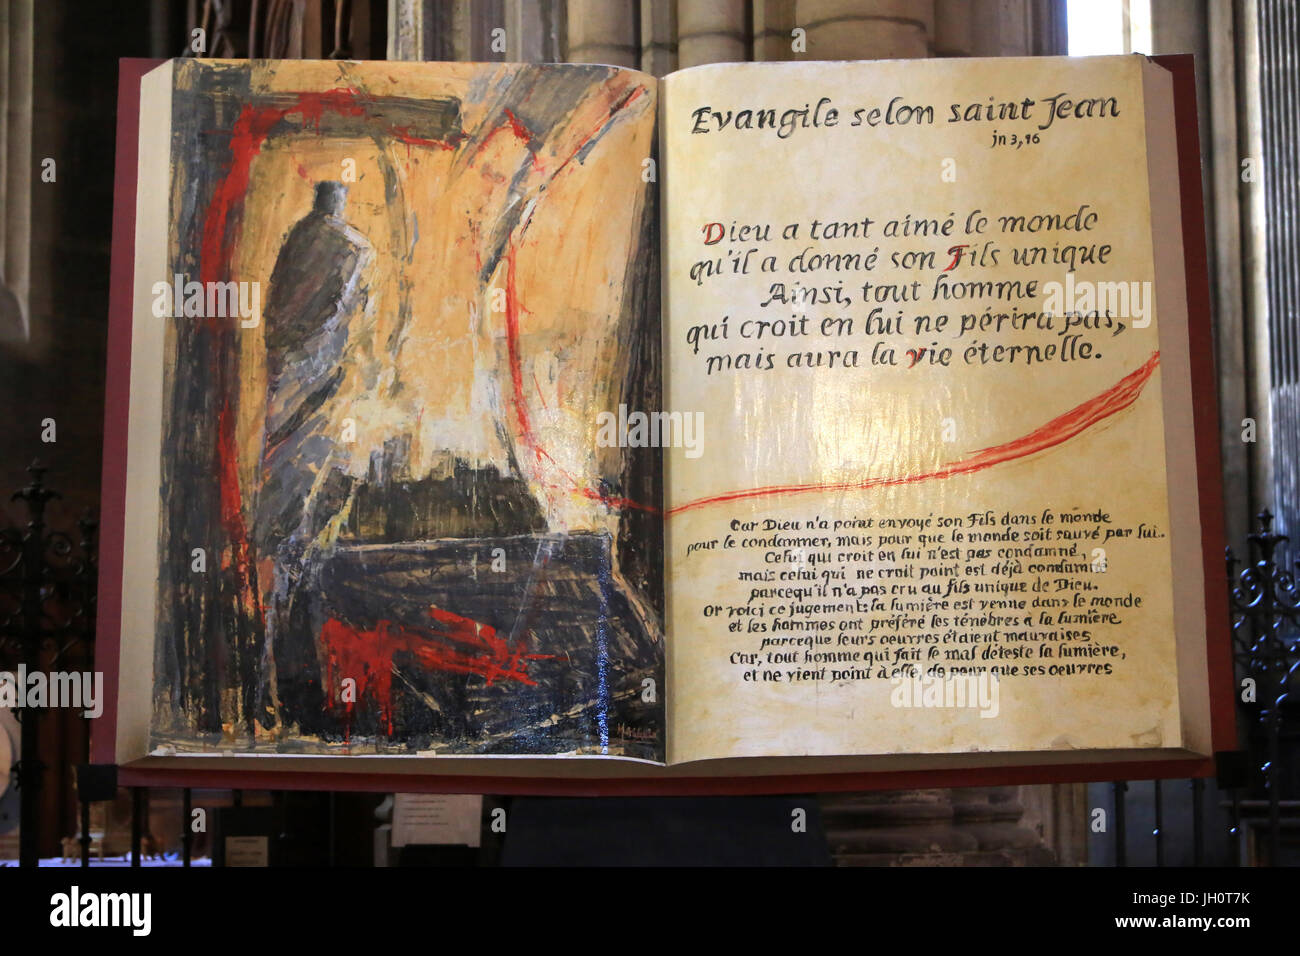 Gospel according to Saint John on a lectern. Lyon Cathedral. France. - Stock Image